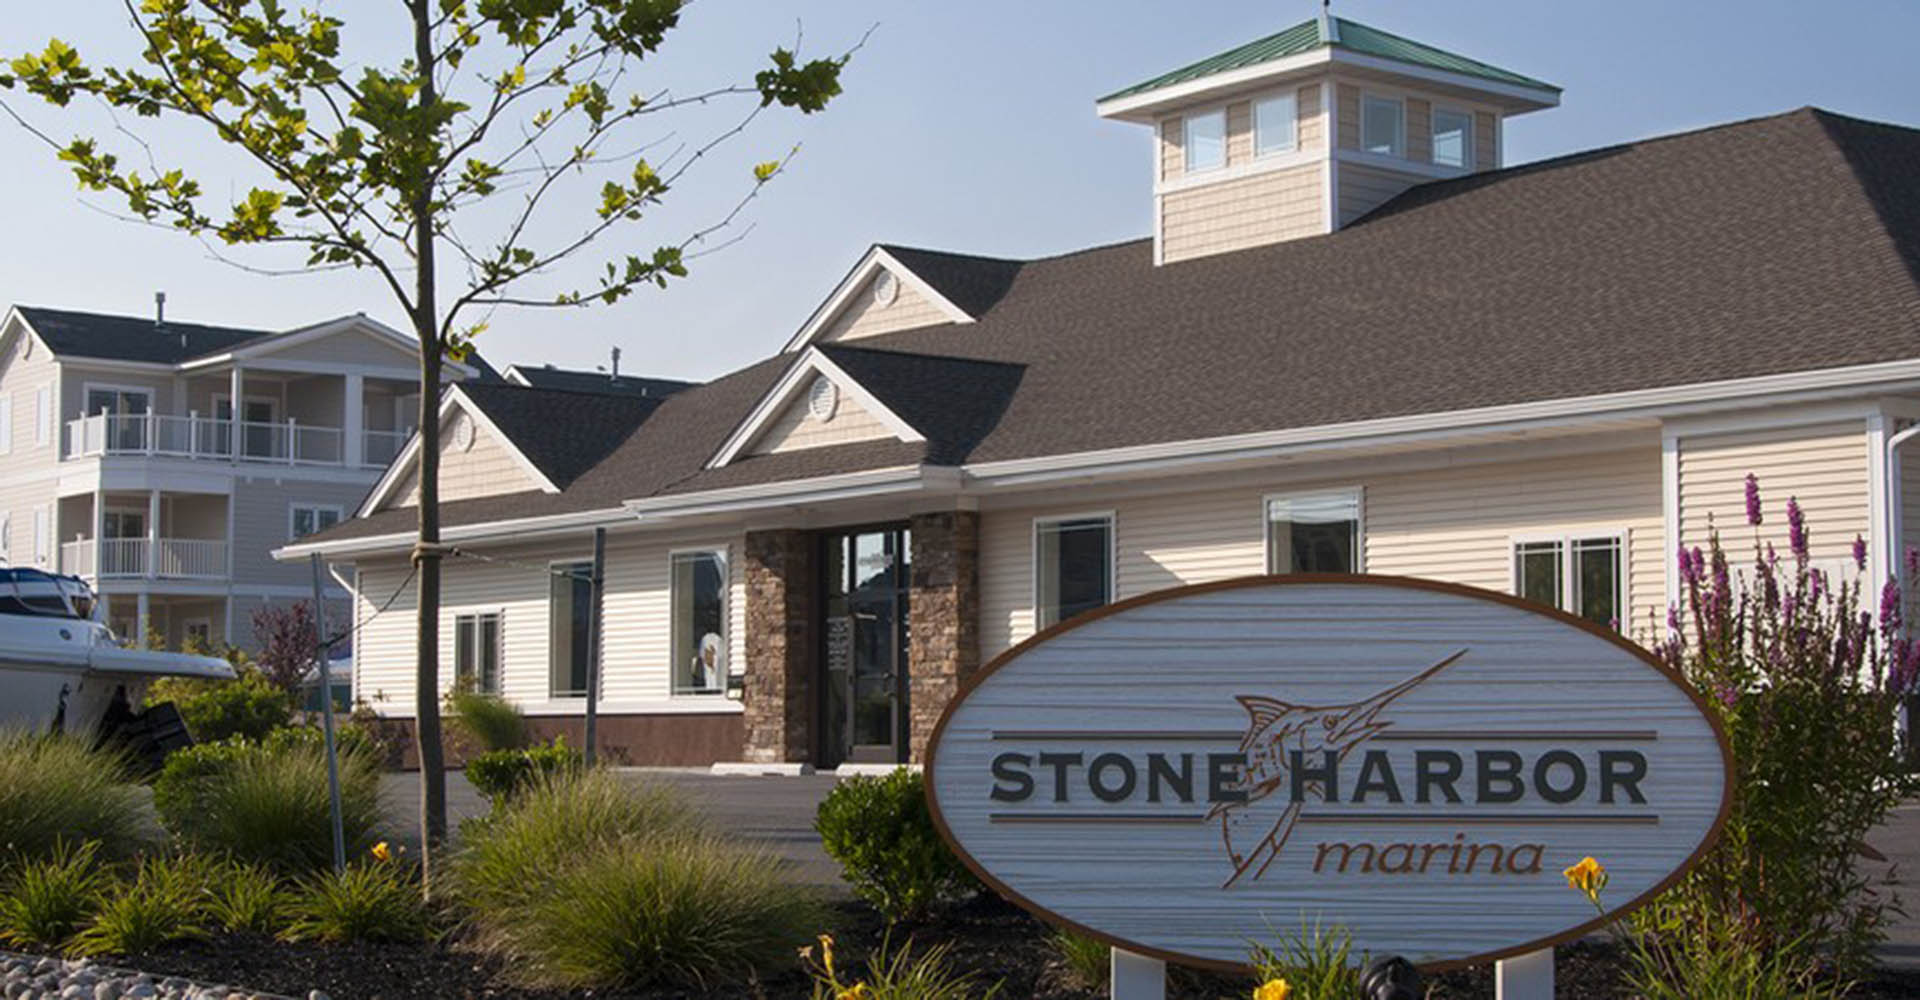 Store front image for the dealership located at Stone Harbor, NJ